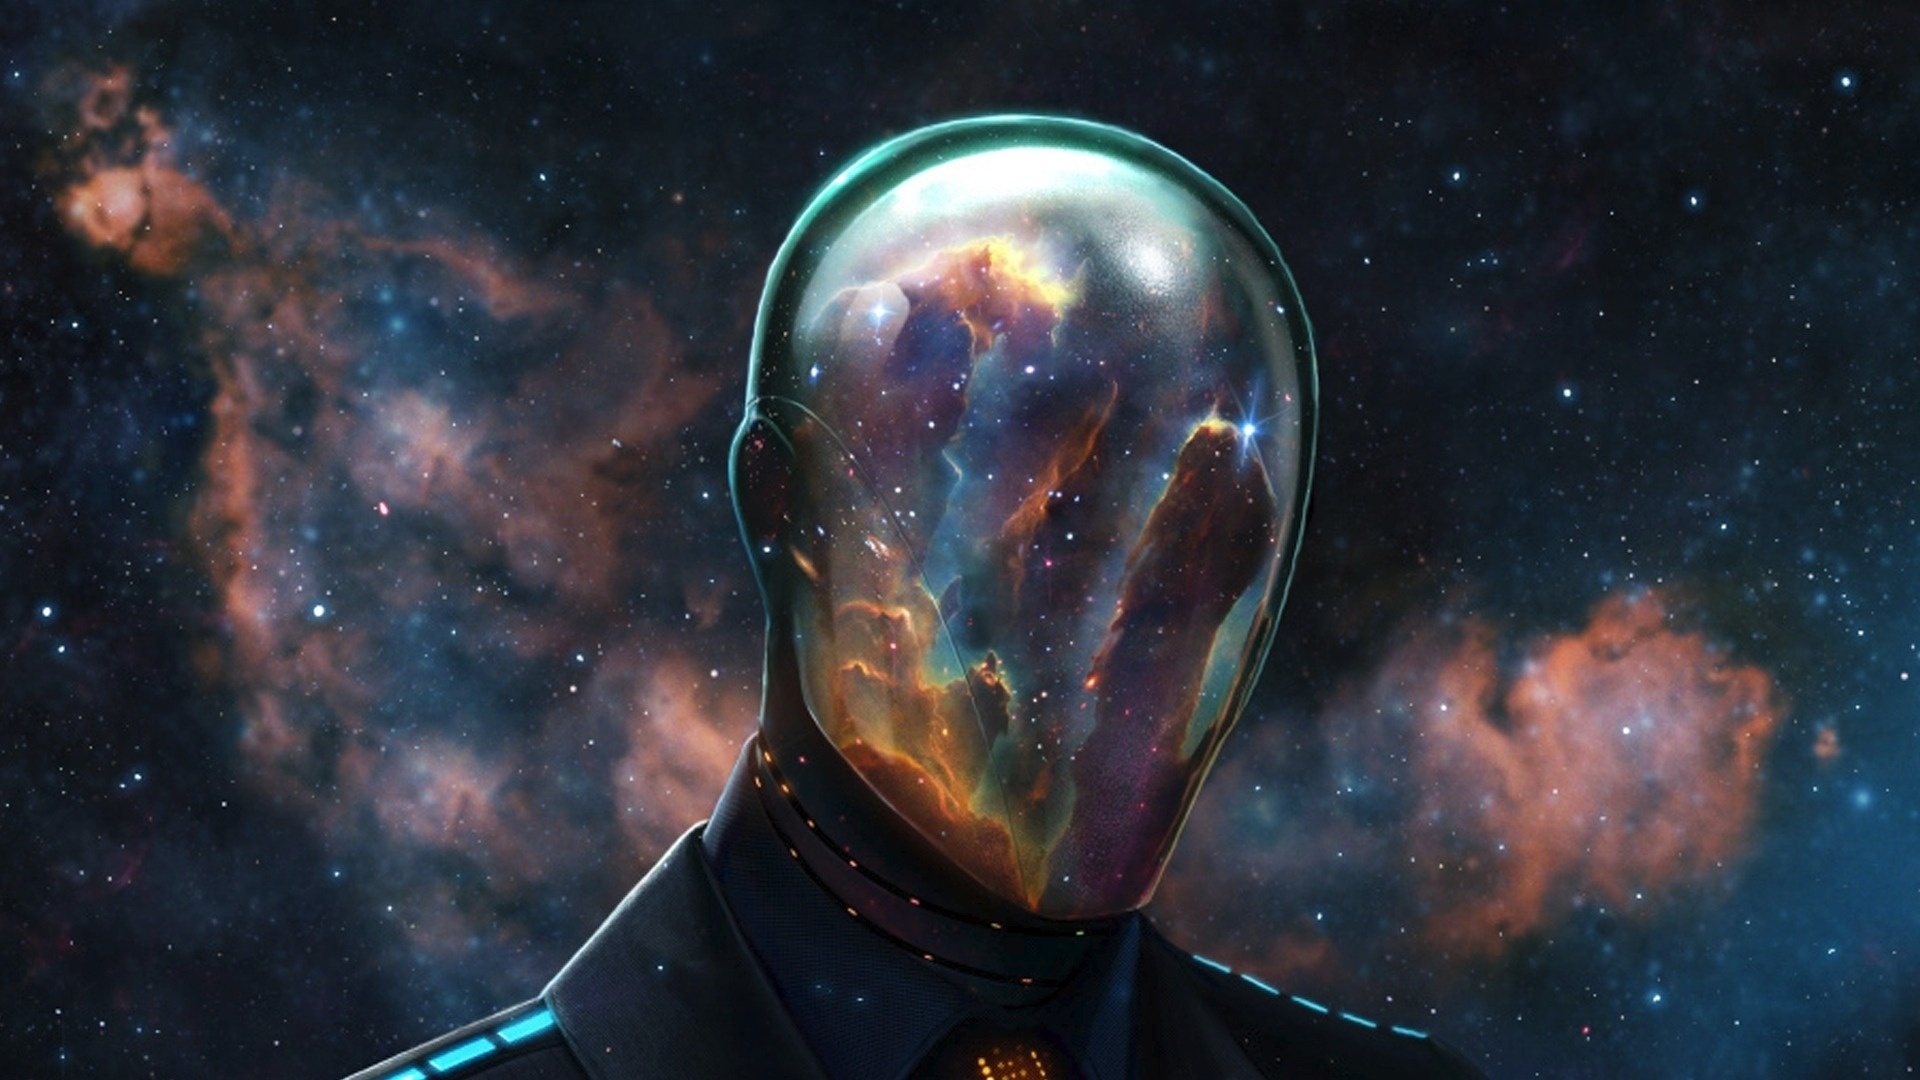 Download 'epic reflective space mask' HD wallpaper